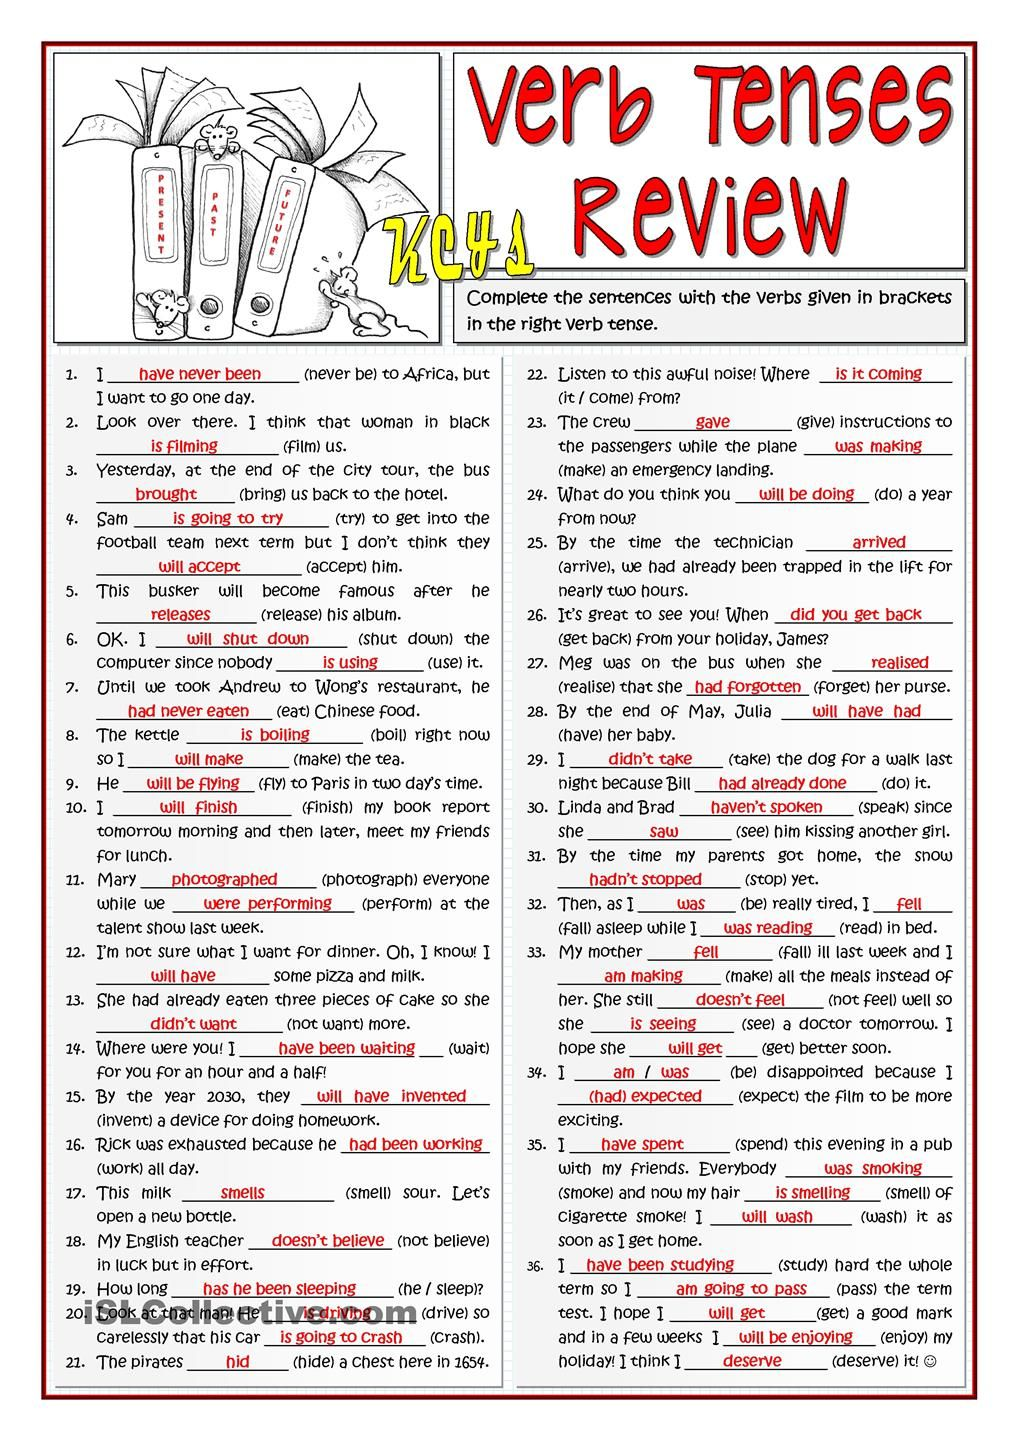 worksheet Verb Tense Review Worksheet b1 verb tenses review esl pinterest english and review